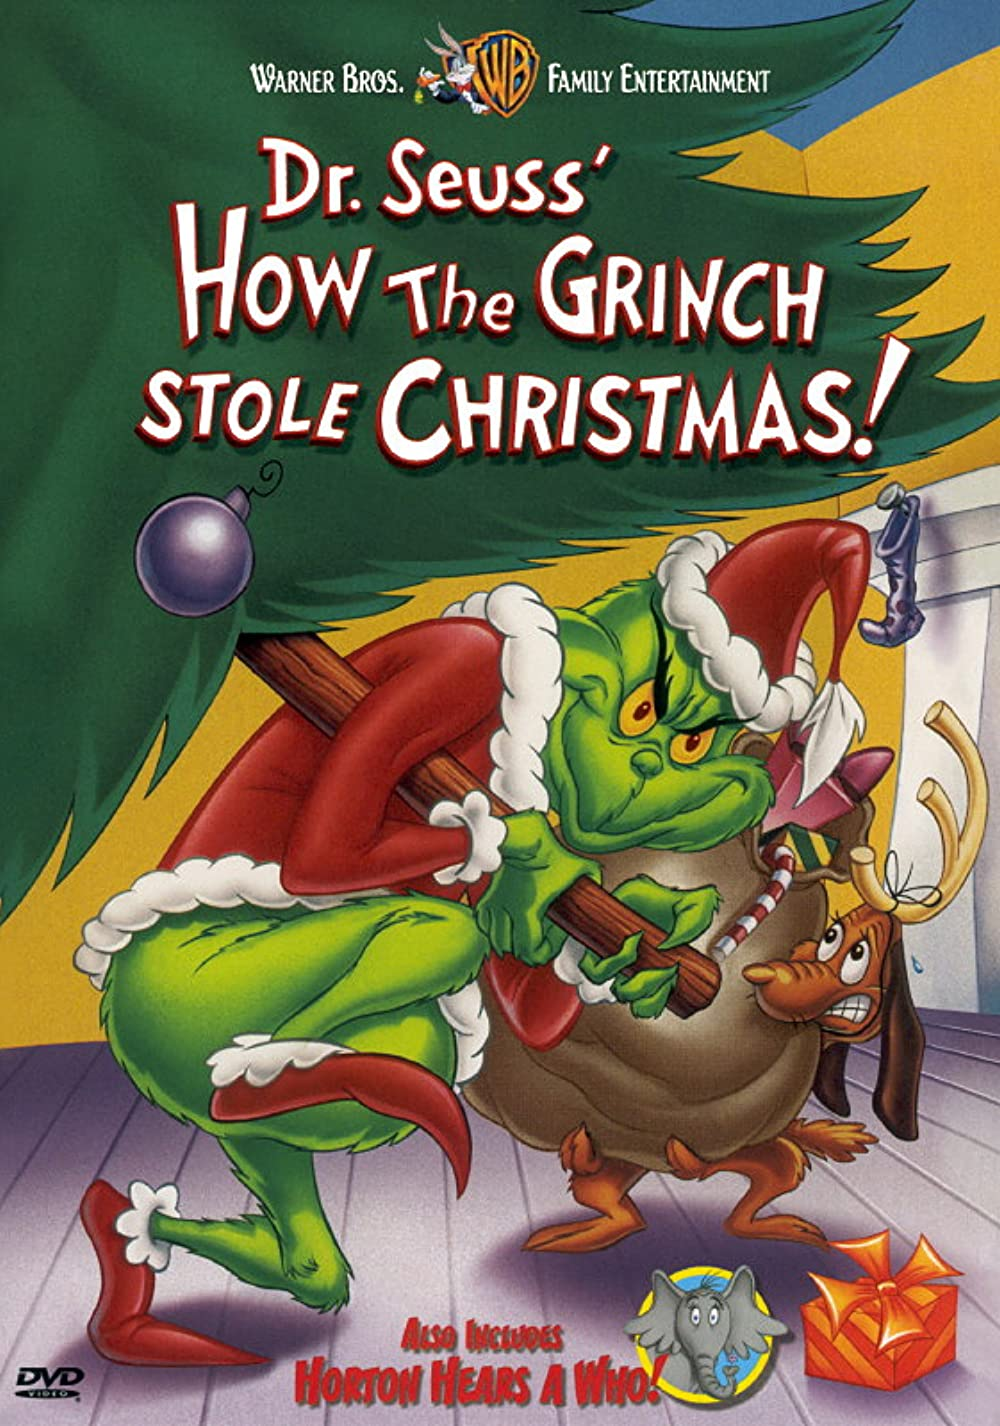 File:Grinch DVD 2000.jpg